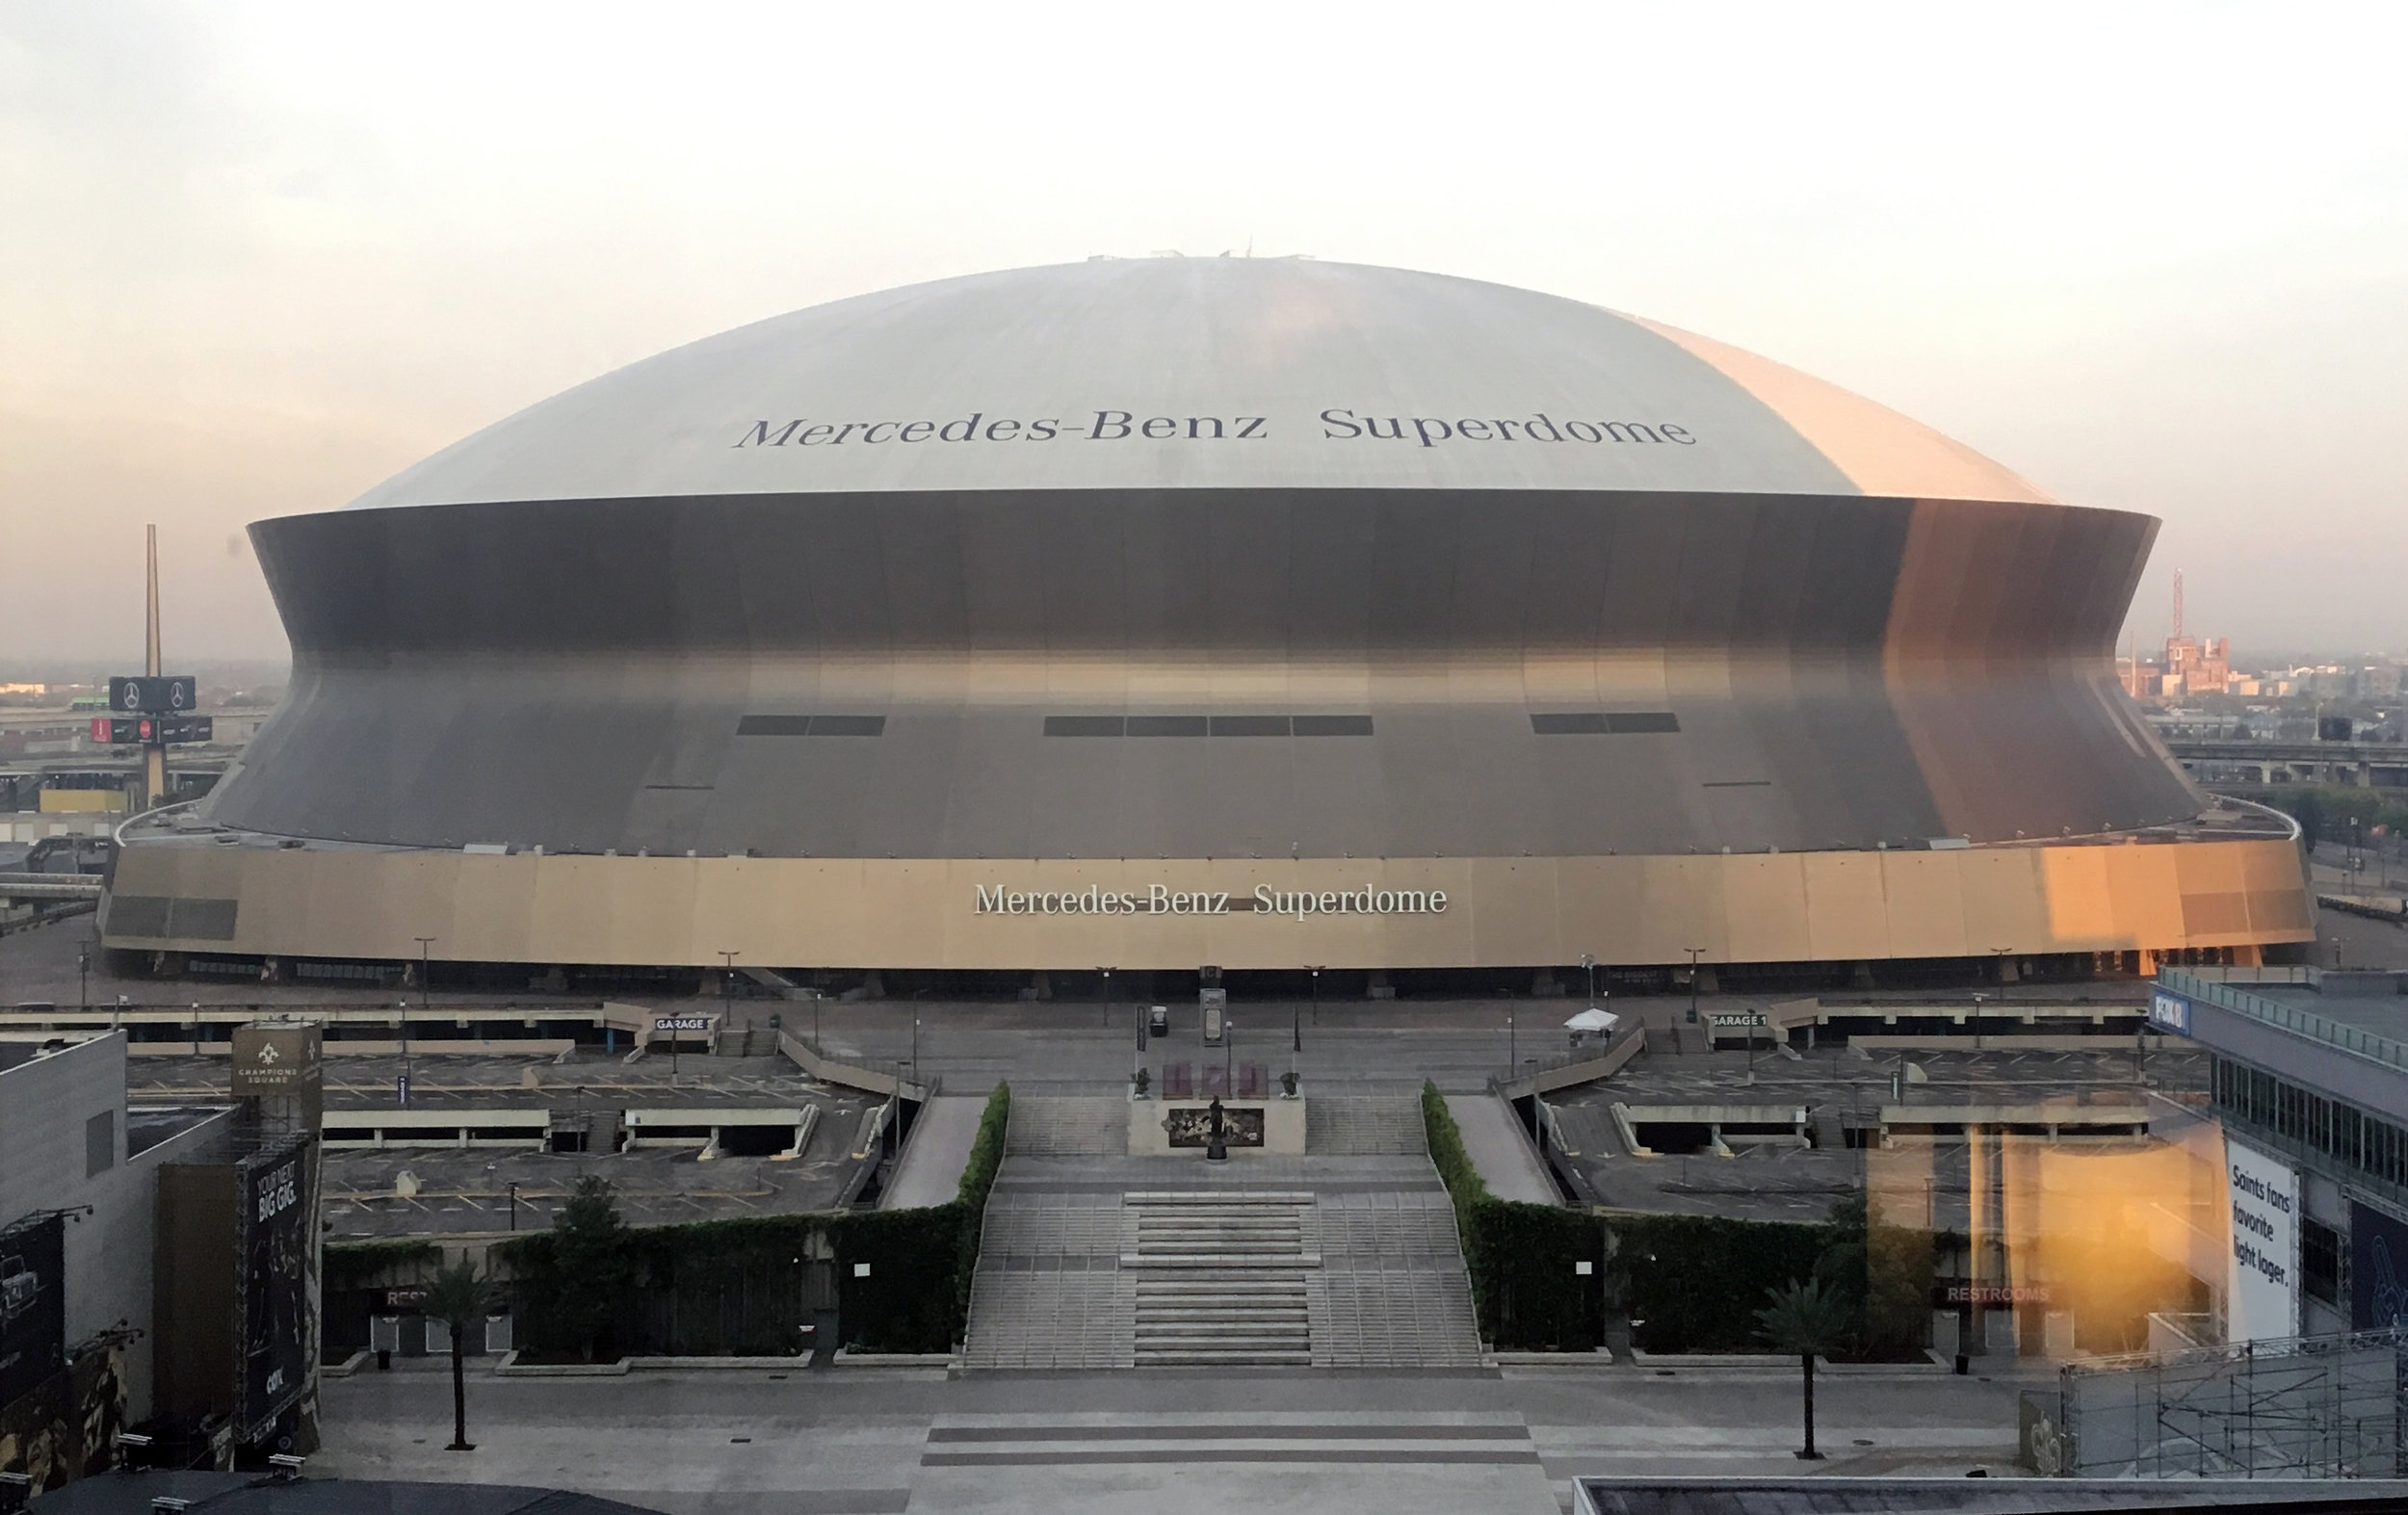 """Chris attended ENDO 2019 and chaired a session entitled """"Normal Spermatogenesis is Critical for Reproductive Function"""" with 3 amazing speakers:  Kyle Orwig  (Magee Womens Institute at the University of Pittsburgh),  Brad Cairns  (Huntsman Cancer Institute at the University of Utah), and  Dorry Lamb  (Weill-Cornell Medical College). This view of the Superdome was out of the hotel room window!"""